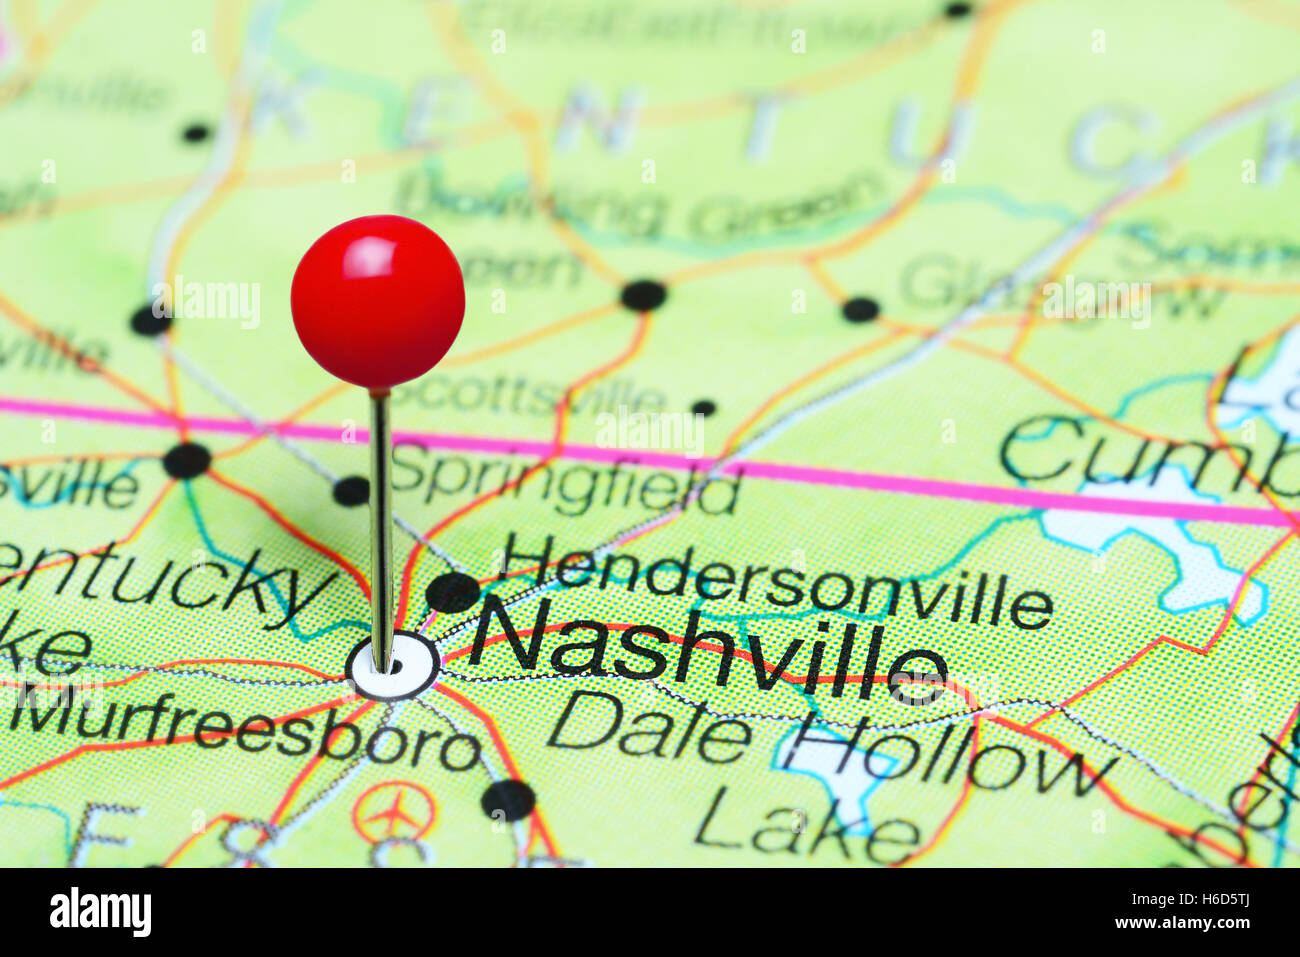 Nashville pinned on a map of Tennessee, USA Stock Photo: 124450498 ...